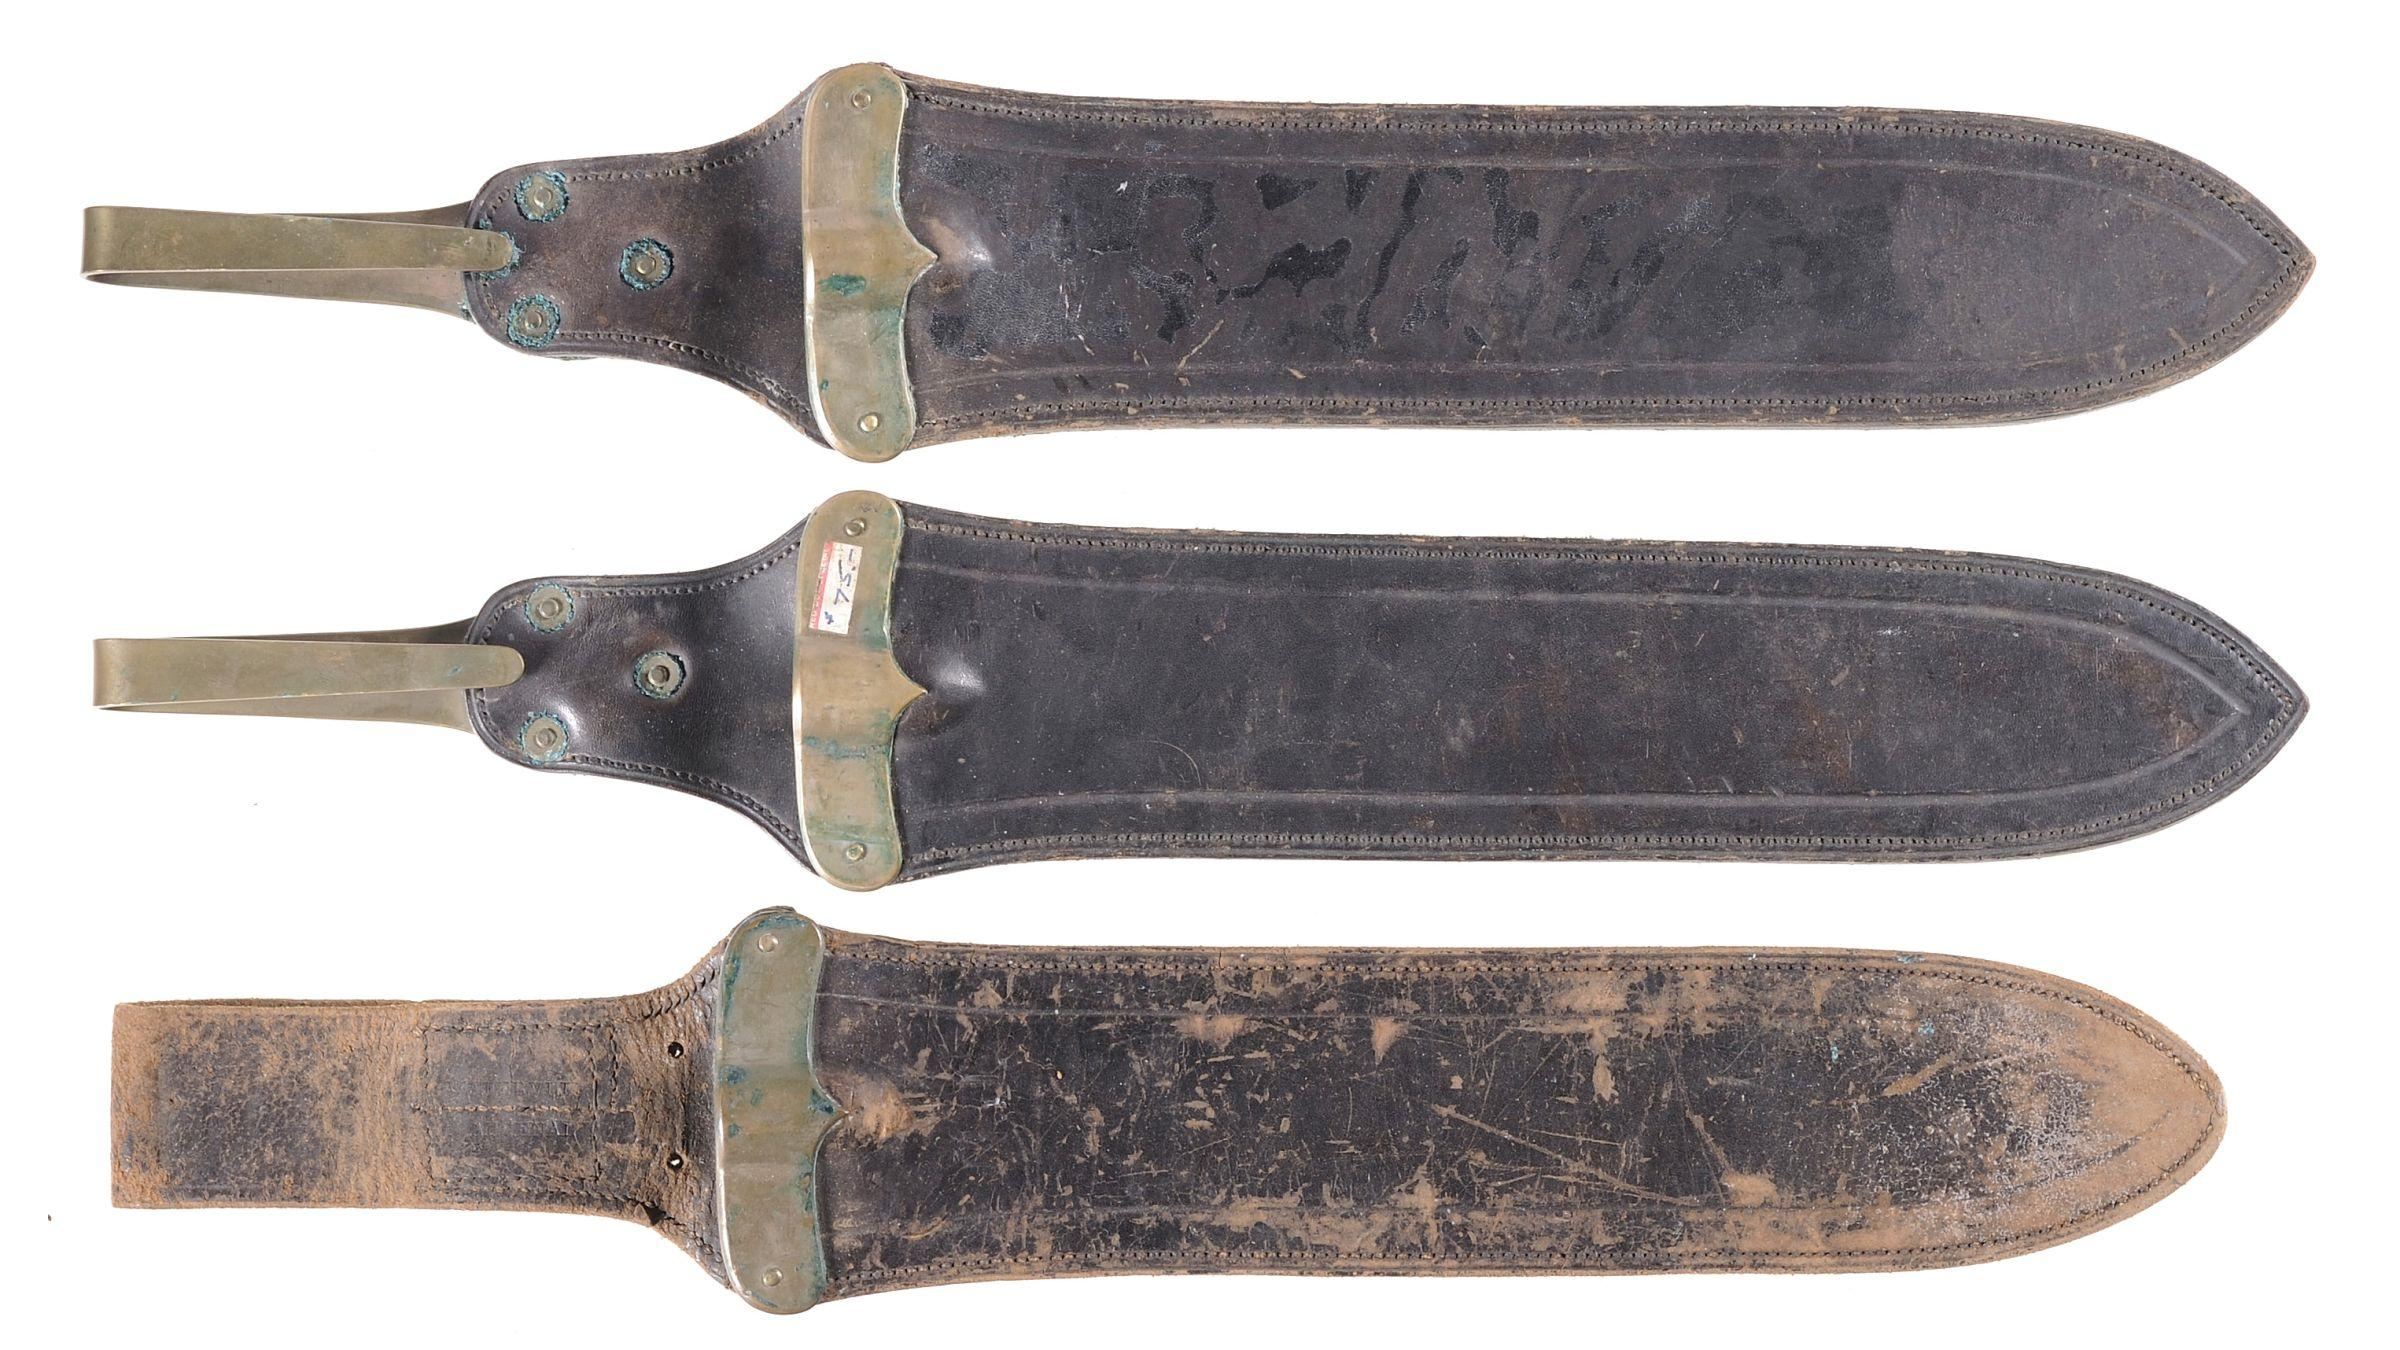 Three Leather Scabbards for the Model 1887 Hospital Corps Knife